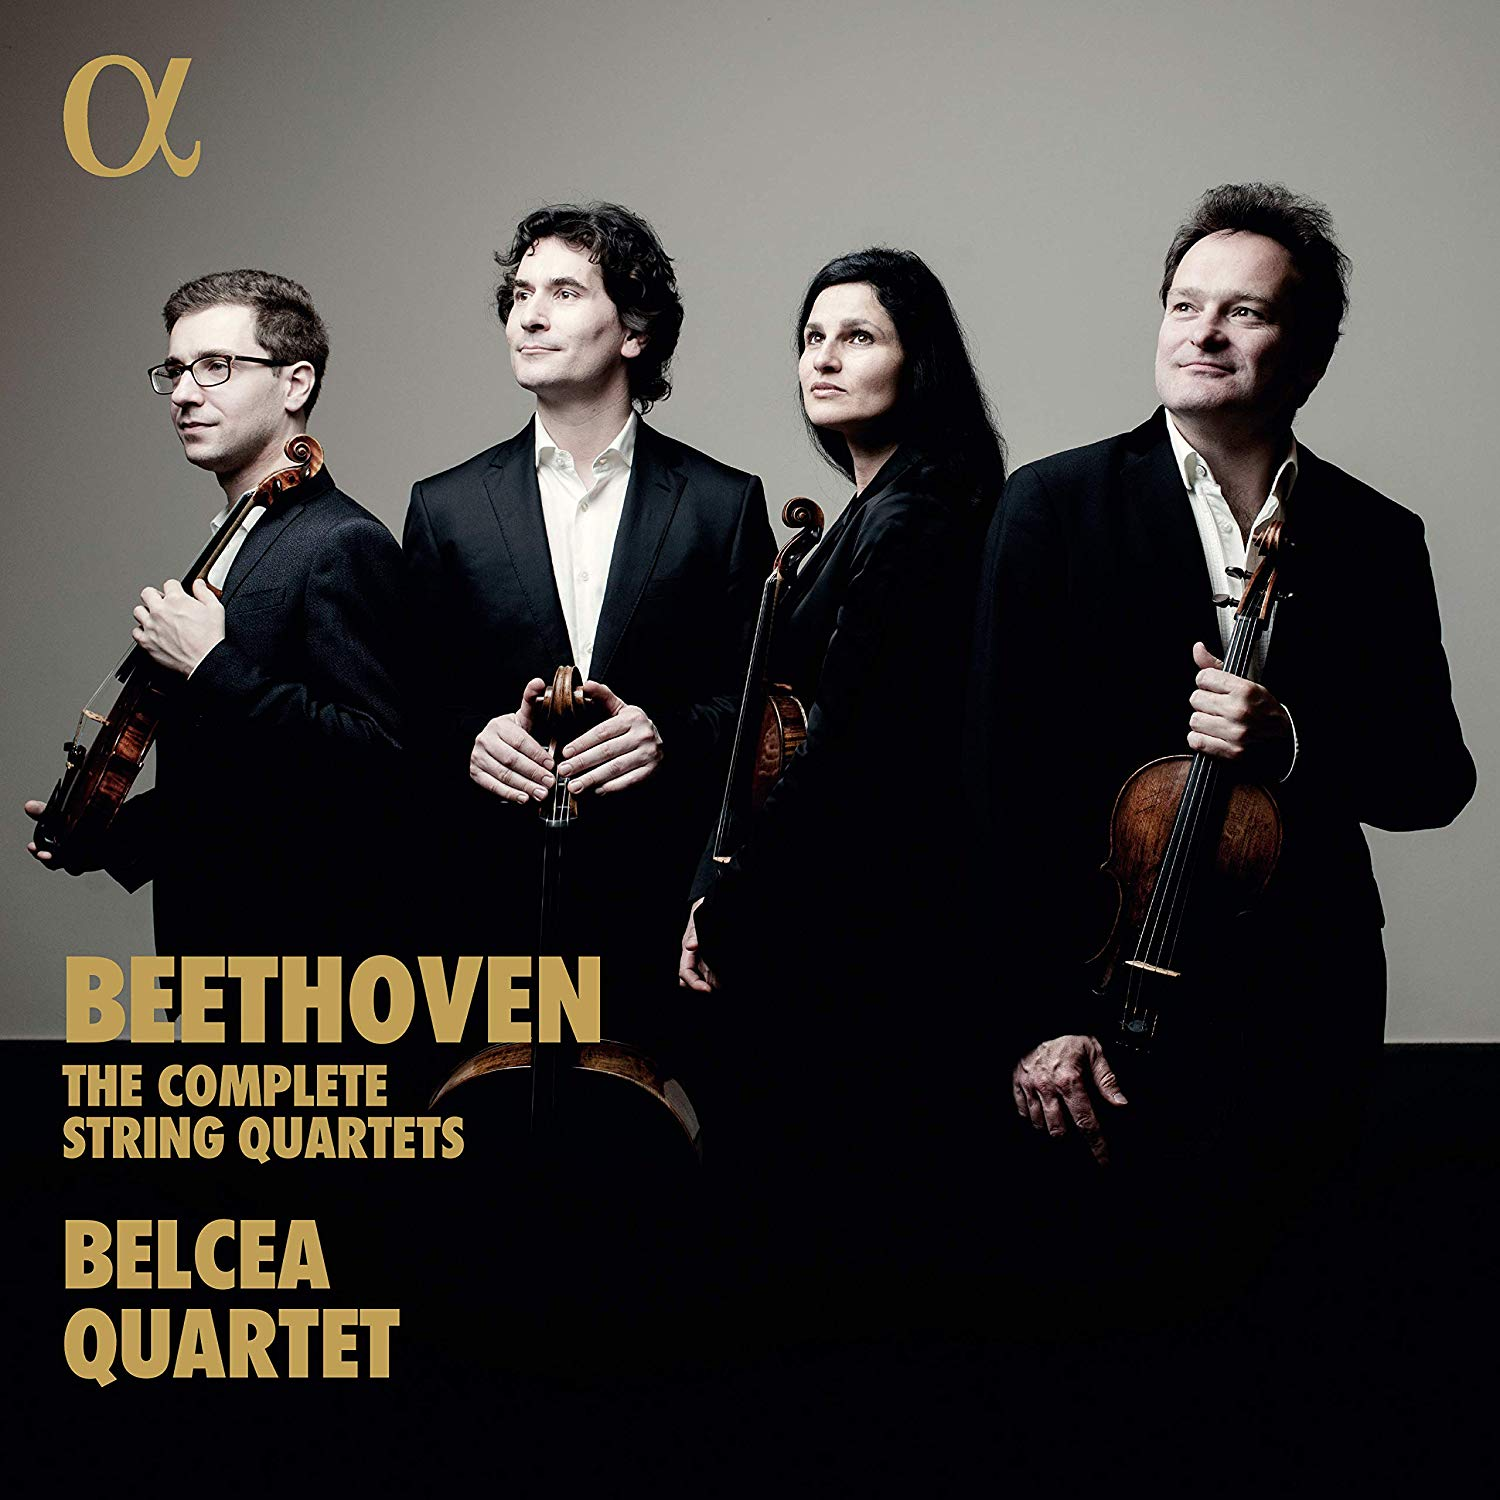 BELCEA strings quartet complete string quartets beethoven cd review critique classiquenews